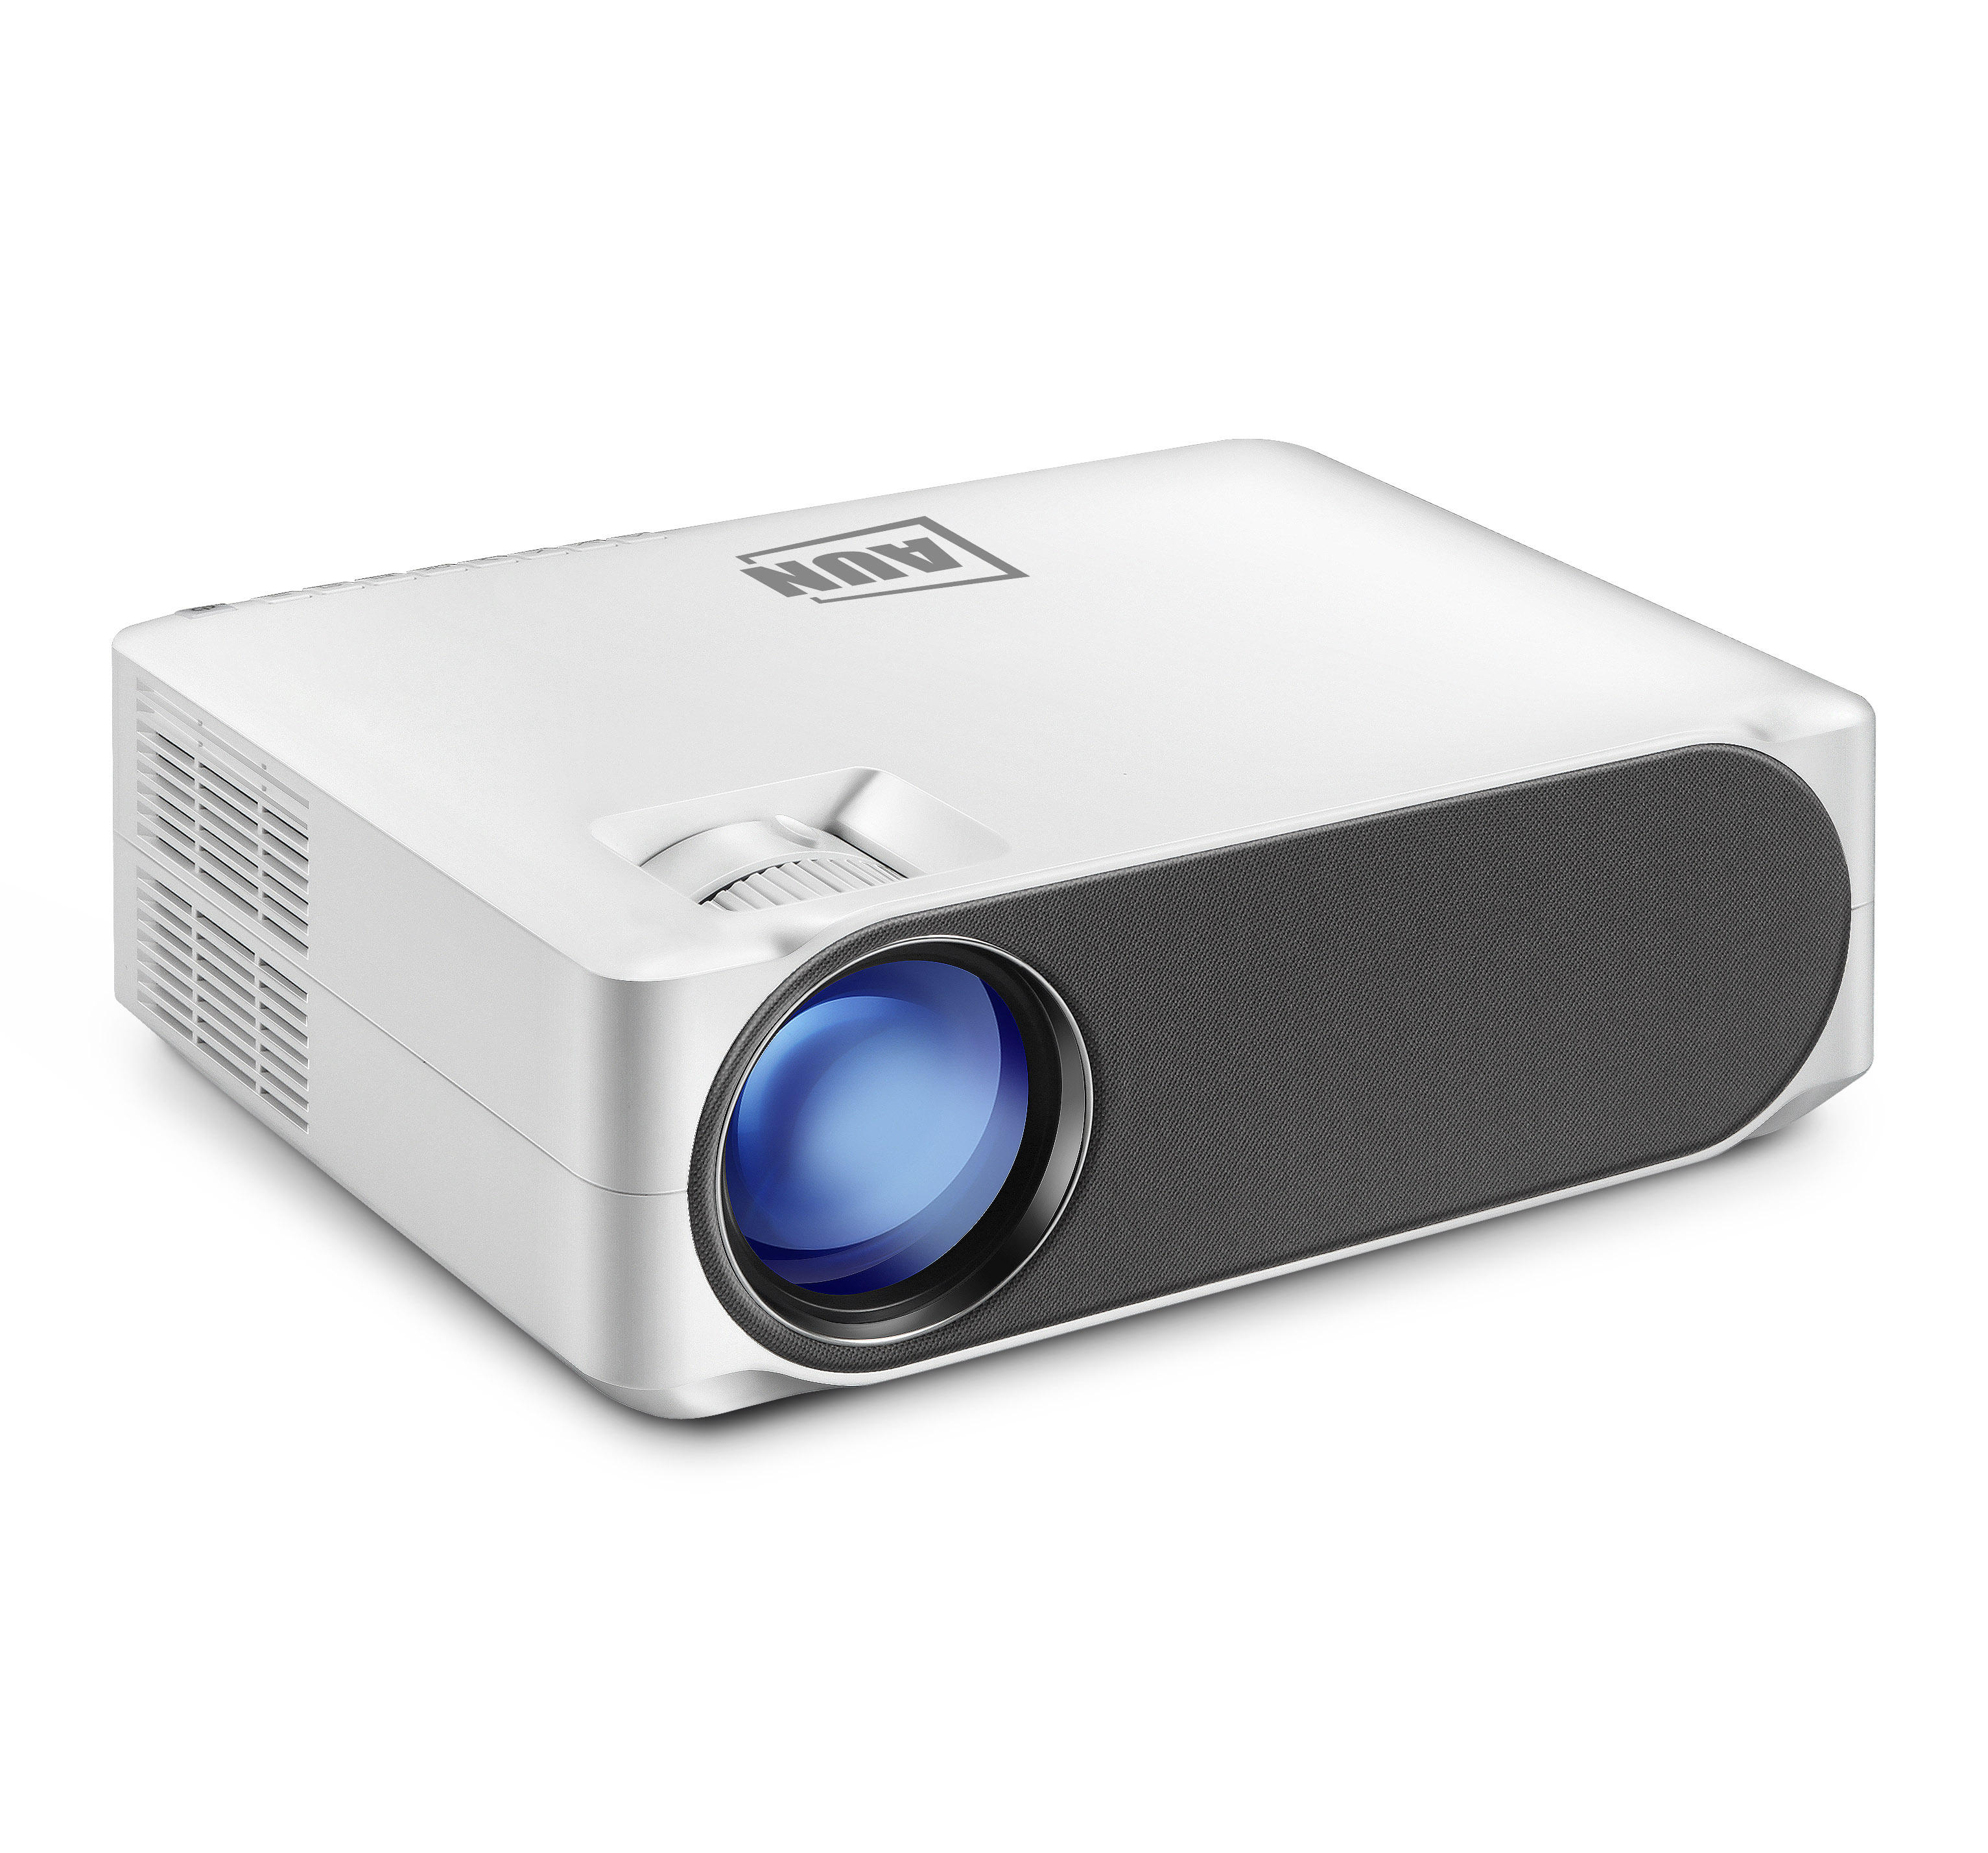 Wholesale [Android Version] AUN AKEY6S Projector Full HD 1080P Resolution 6800 Lumens 1G+8G WIFI 2.4G Bluetooth 4.0 Built in Multimedia Syst